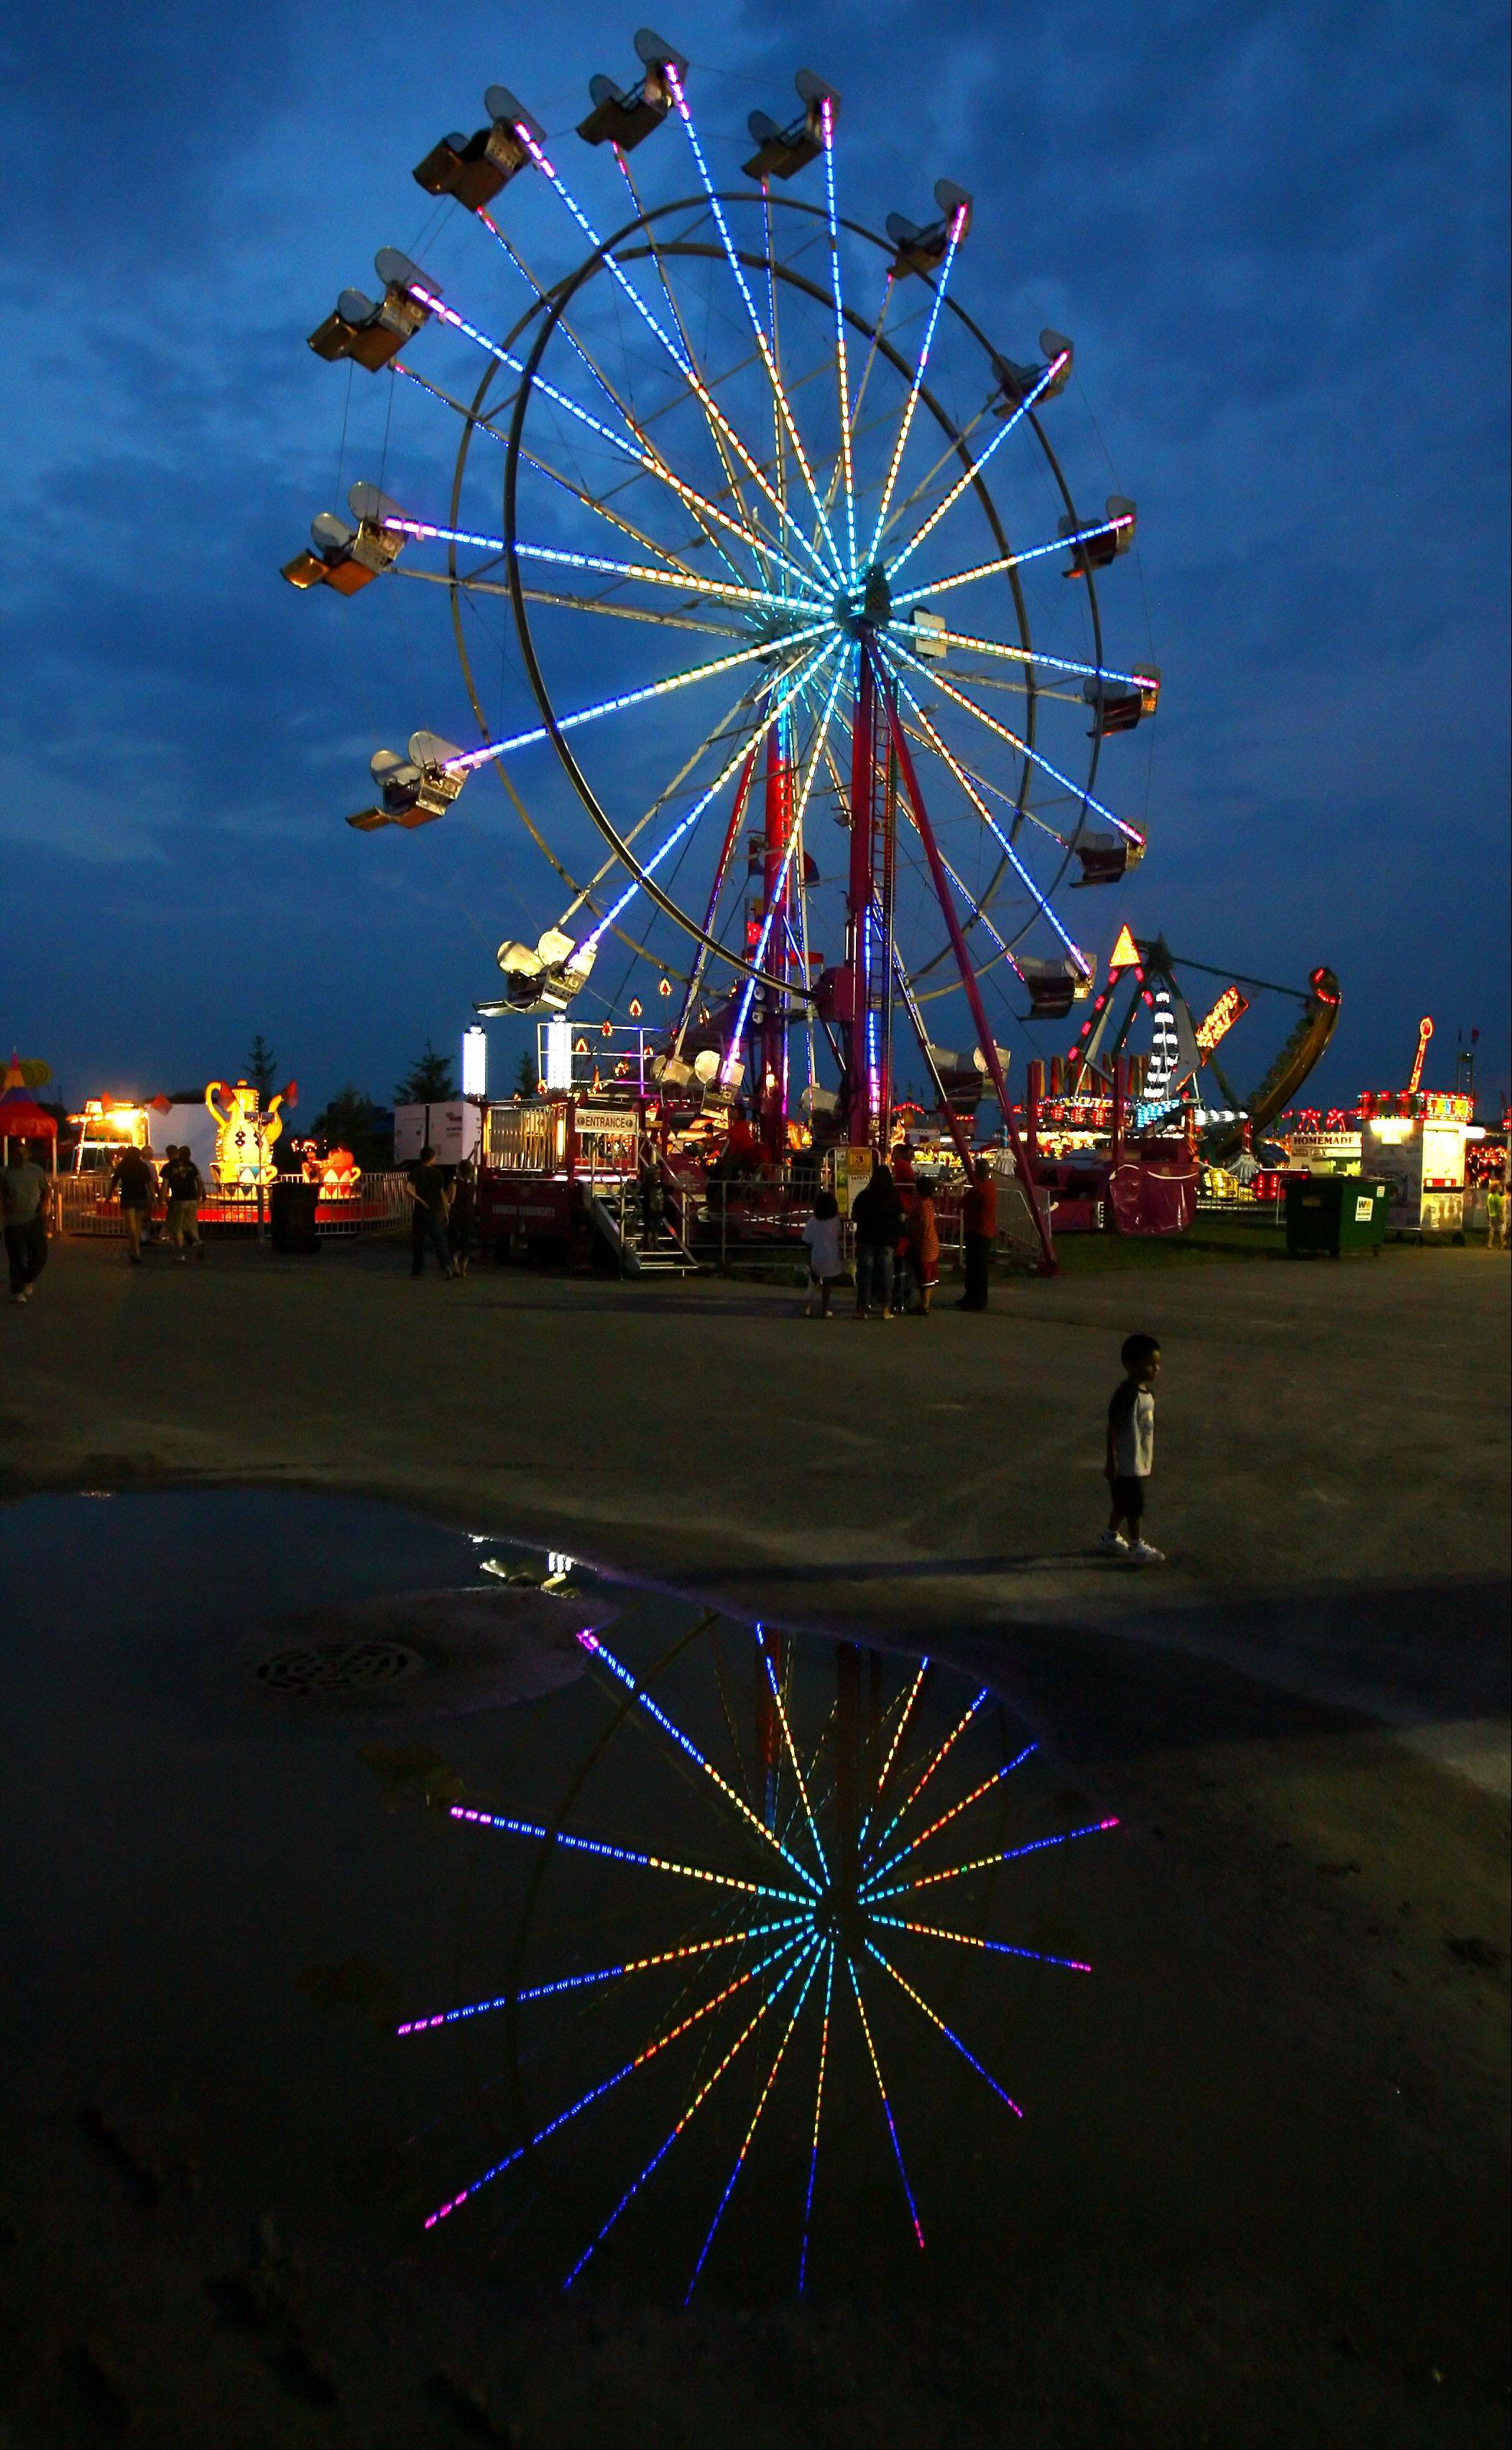 The Ferris wheel lights up the night sky at the Lake County Fair.